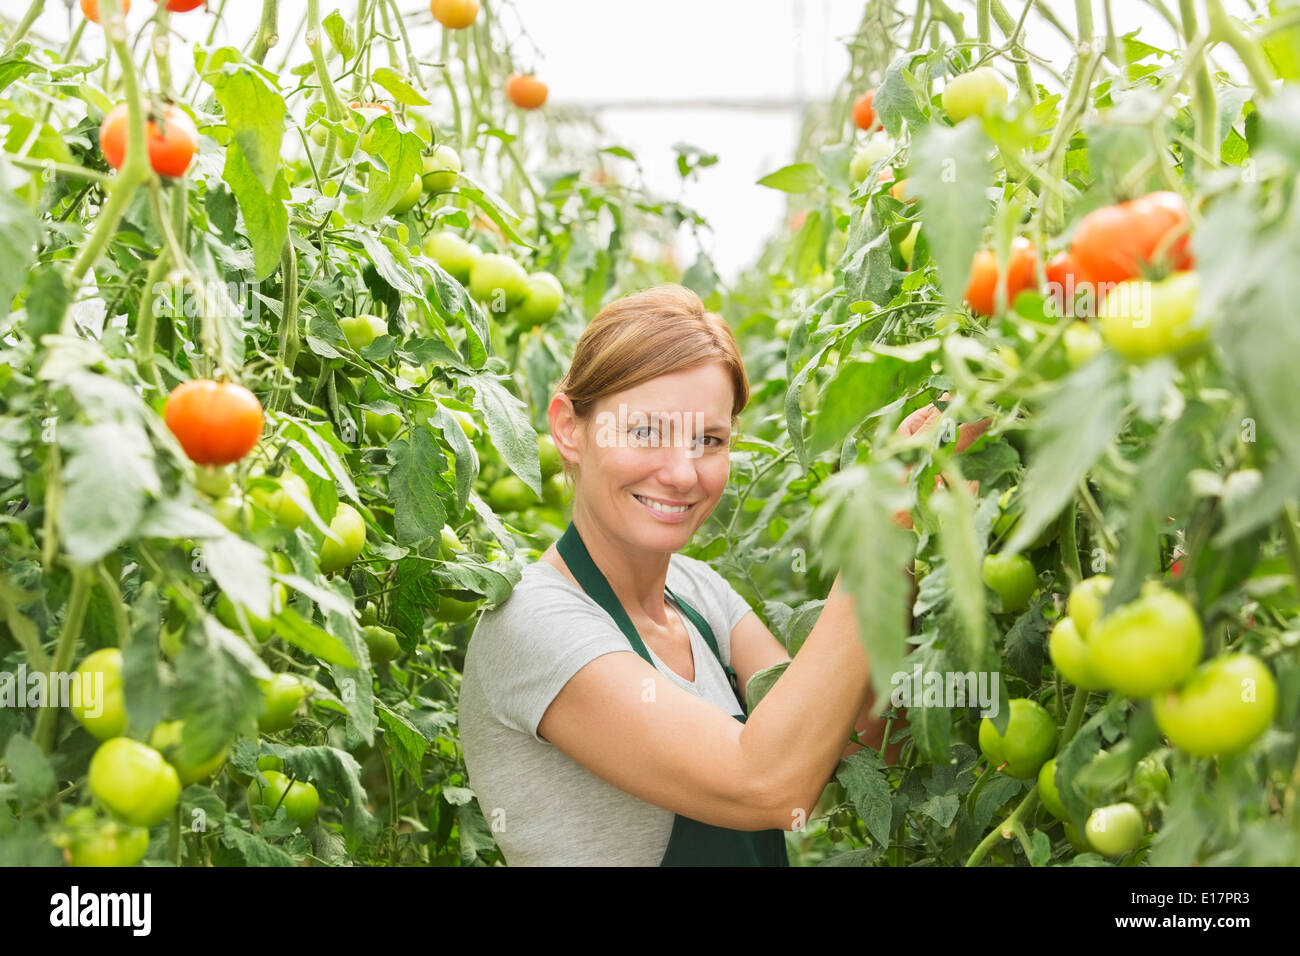 Portrait of woman tending to tomato plants in greenhouse - Stock Image